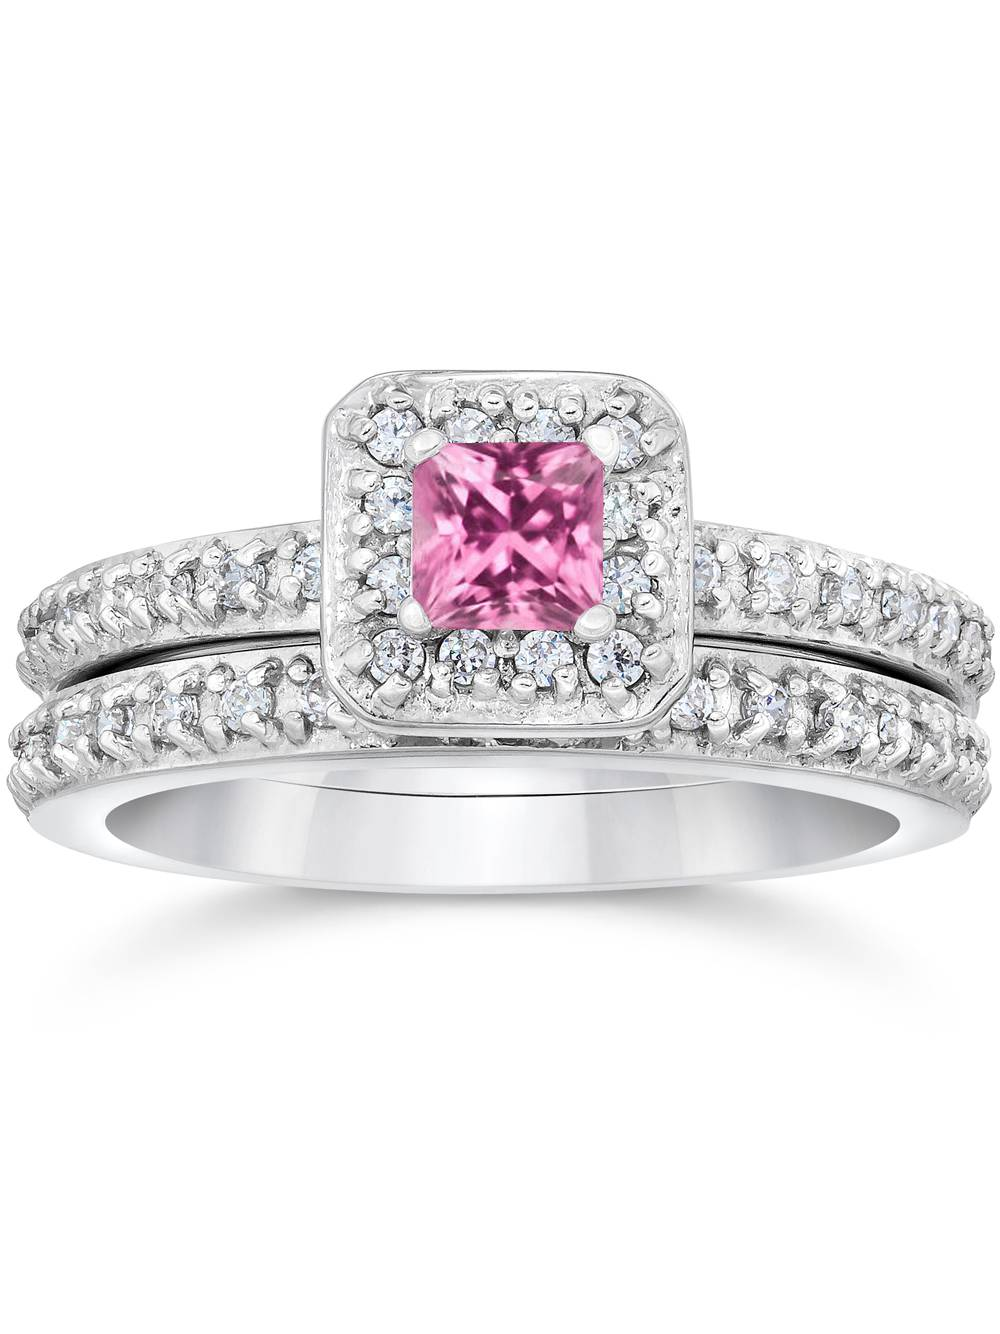 Princess Cut Pink Sapphire 1 1 3ct Pave Vintage Diamond Ring Set 14K White Gold by Pompeii3